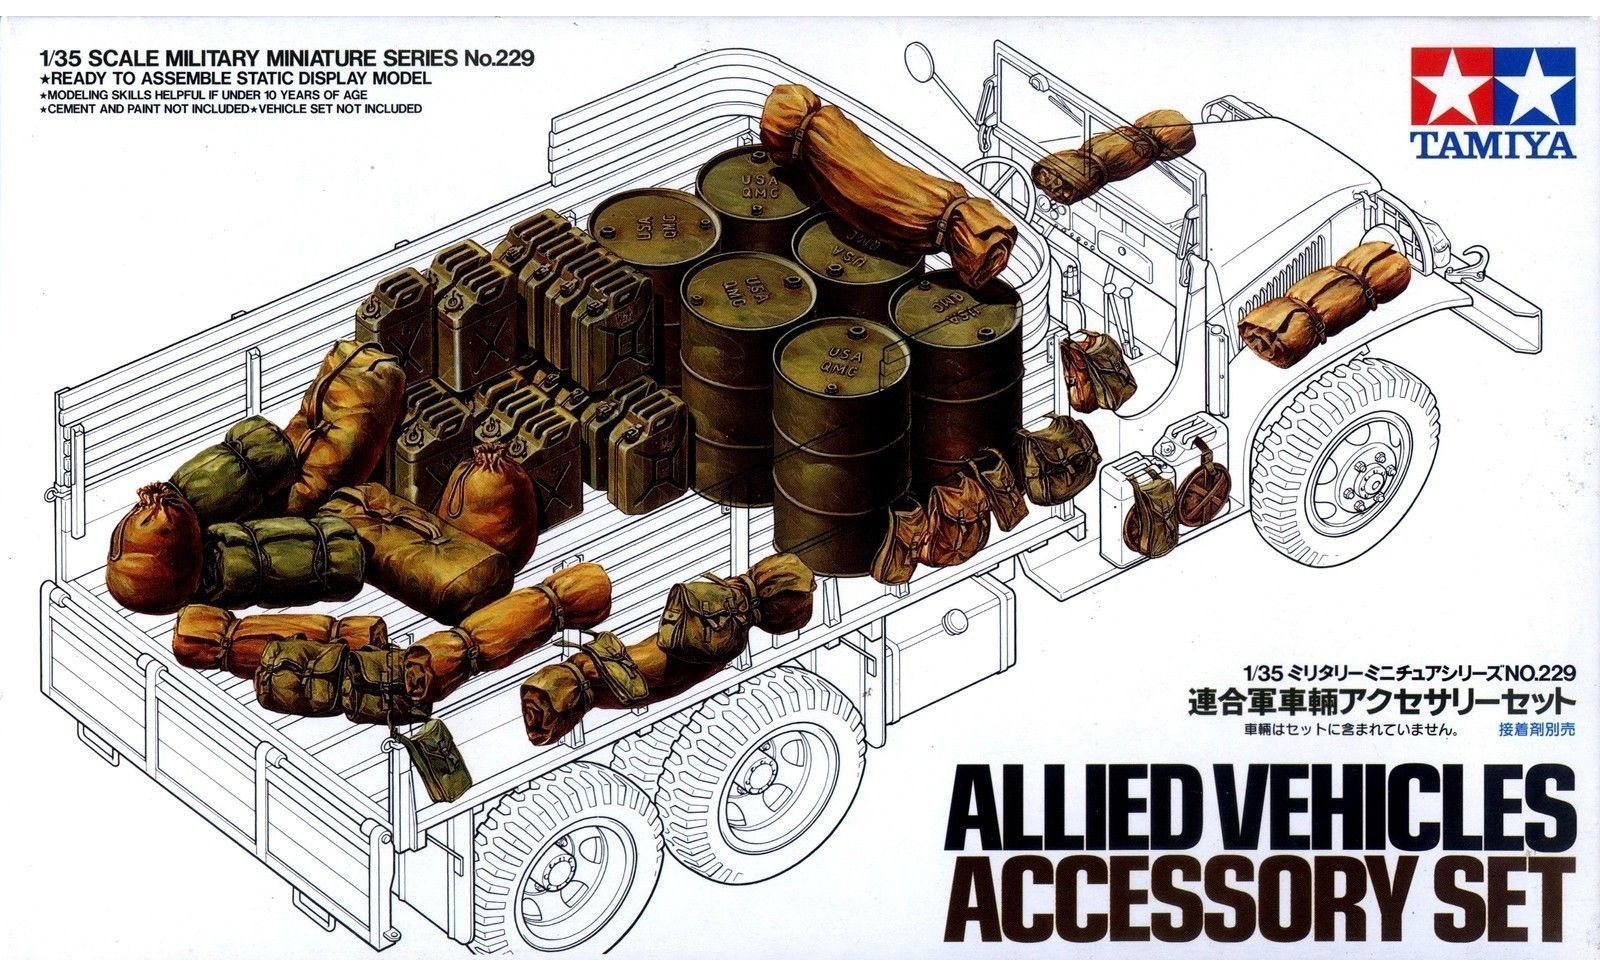 Allied Vehicles Accessory Set - Tamiya 35229 - plastic model kit - 1/35 scale